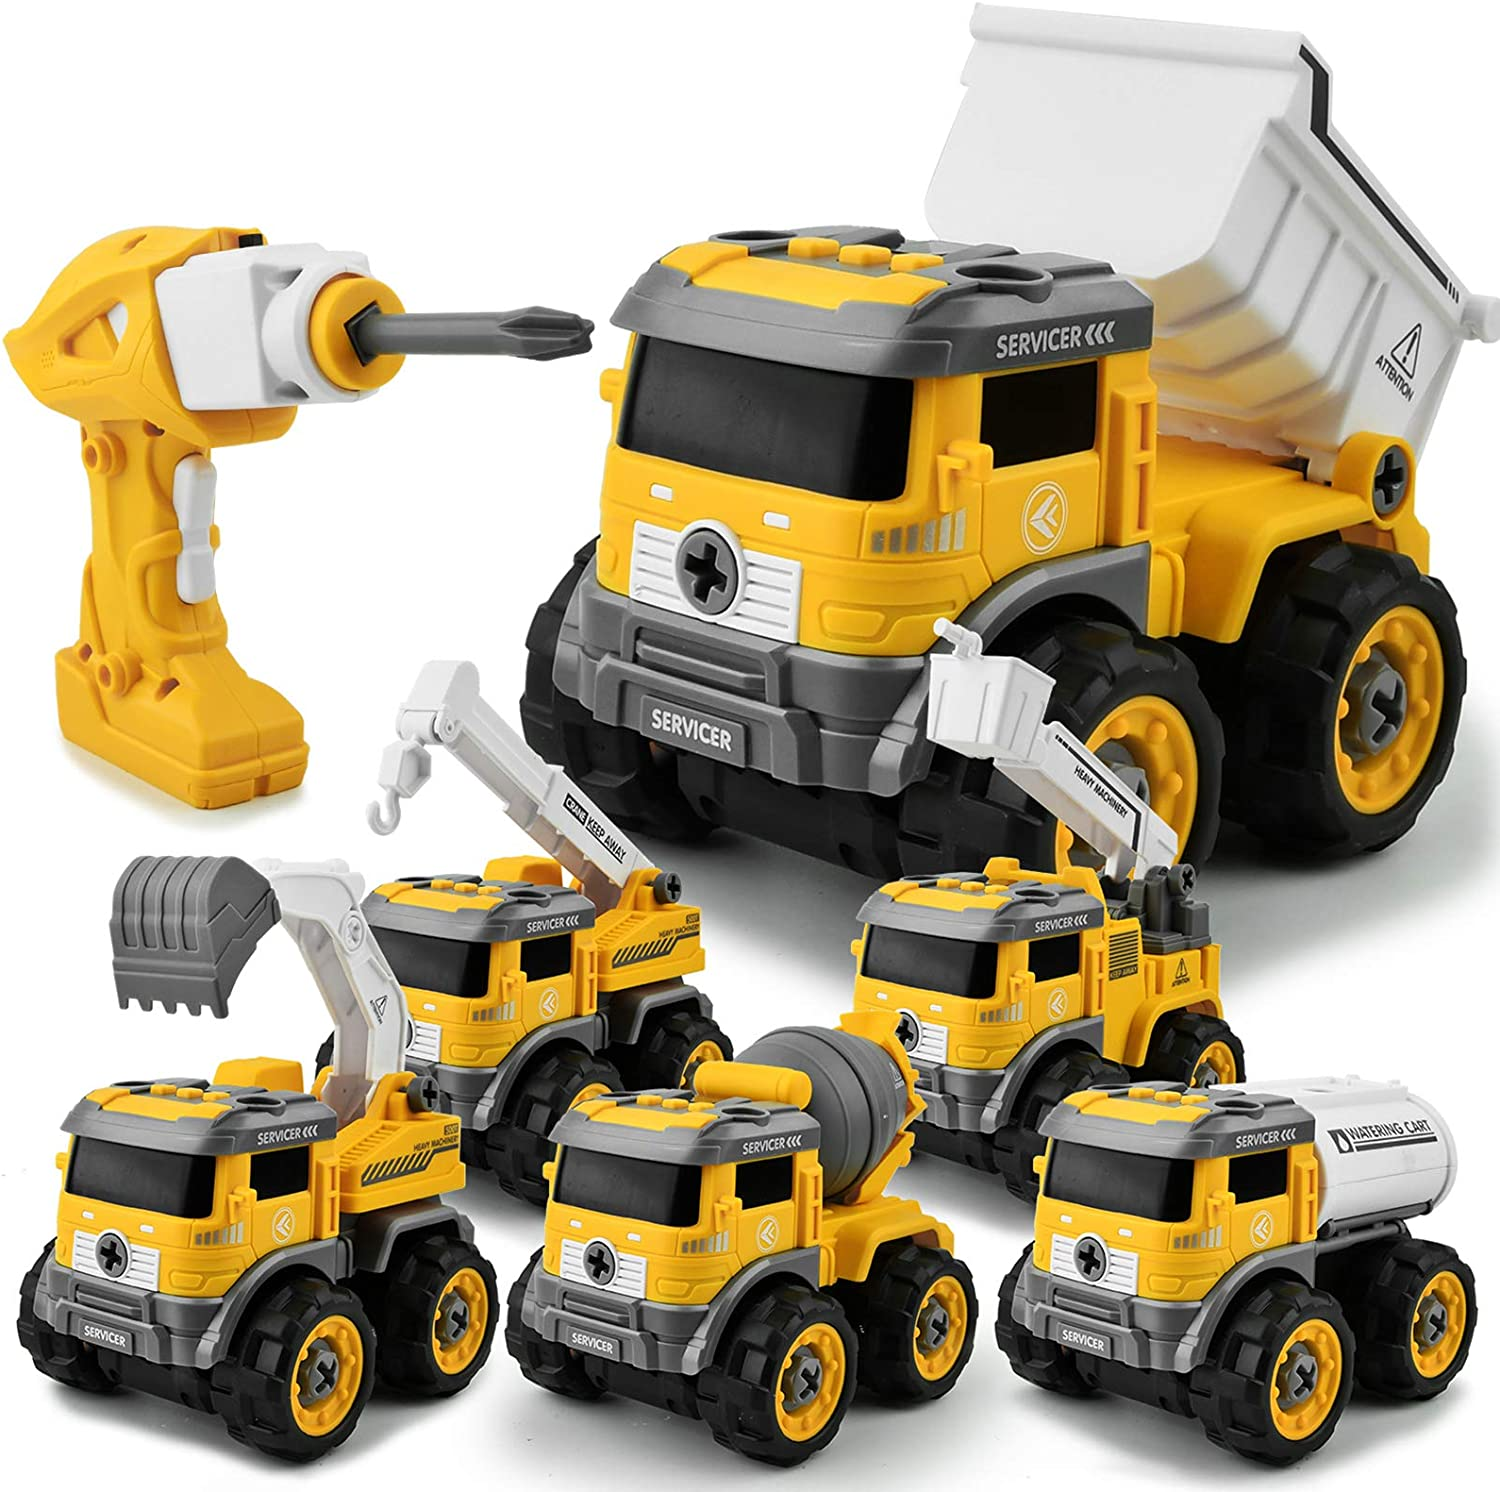 Amazon Promo Code for 6 in 1 Construction Toys for 4 Year Old Boys